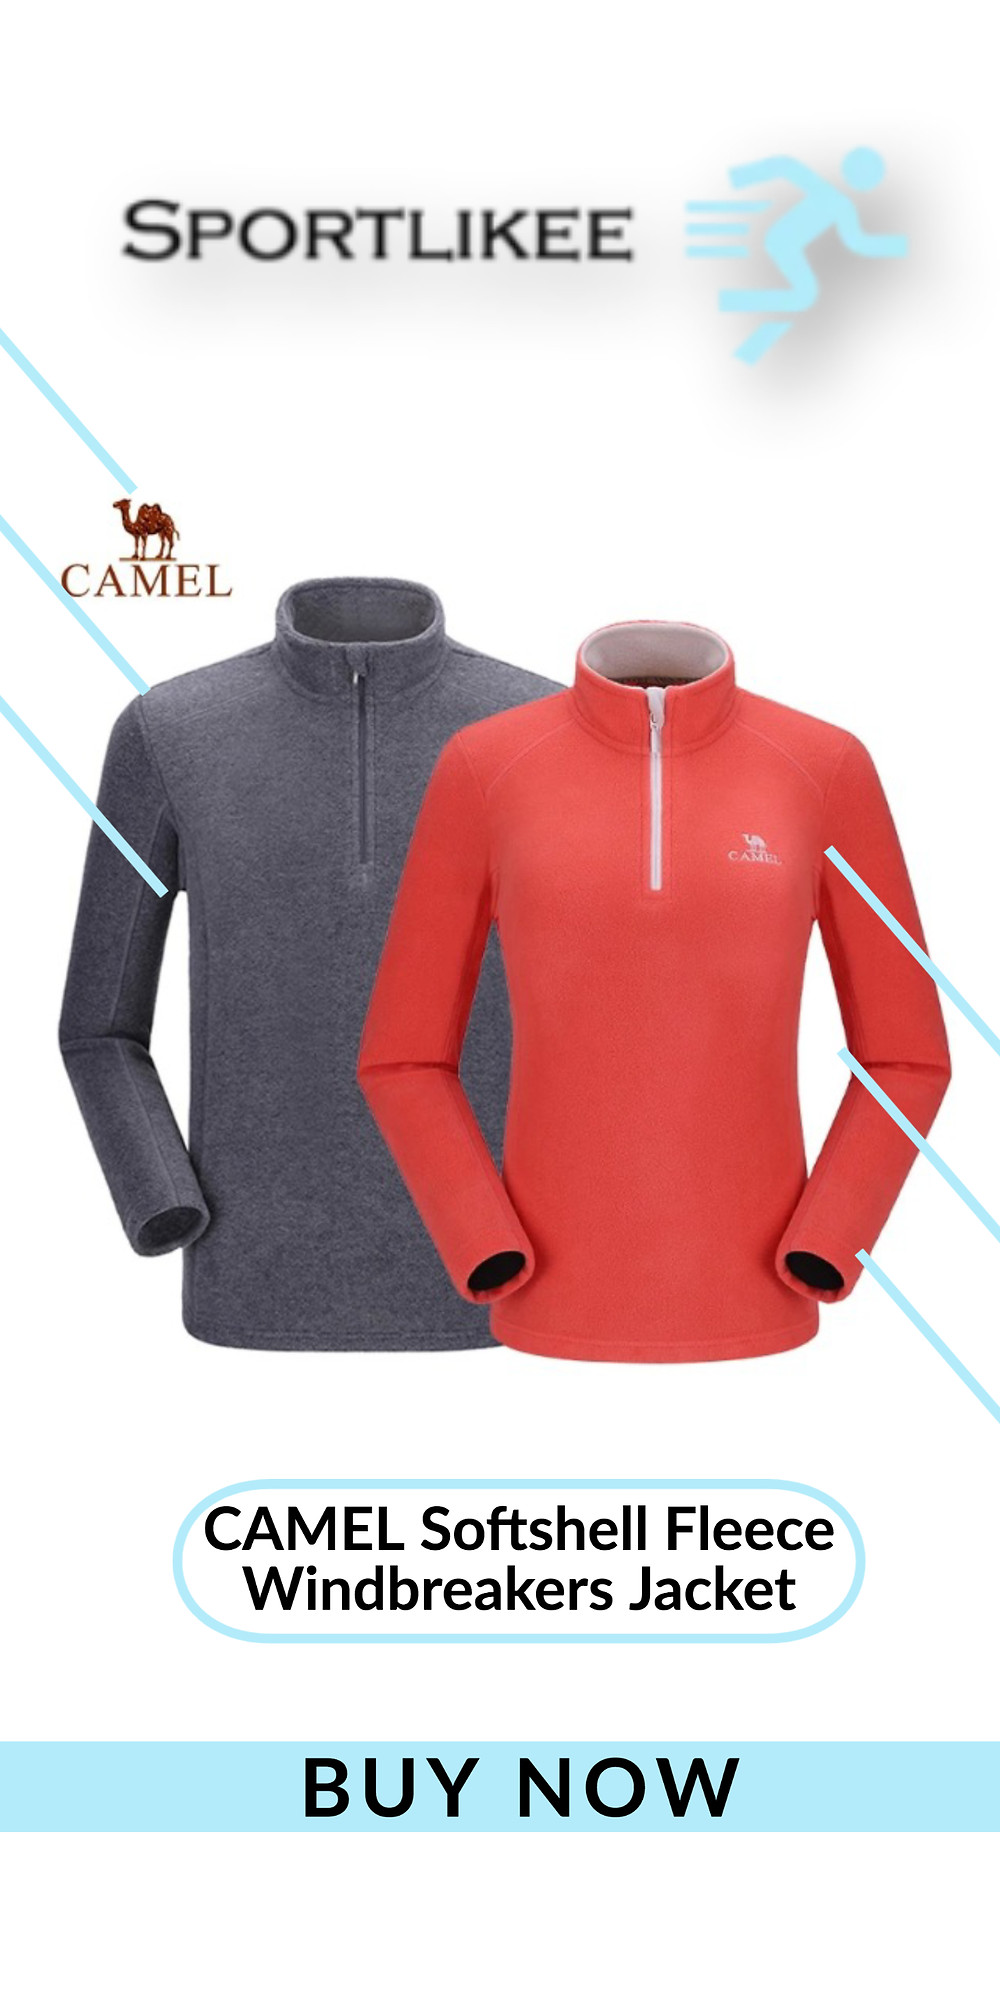 CAMEL Softshell Fleece Windbreakers Jacket